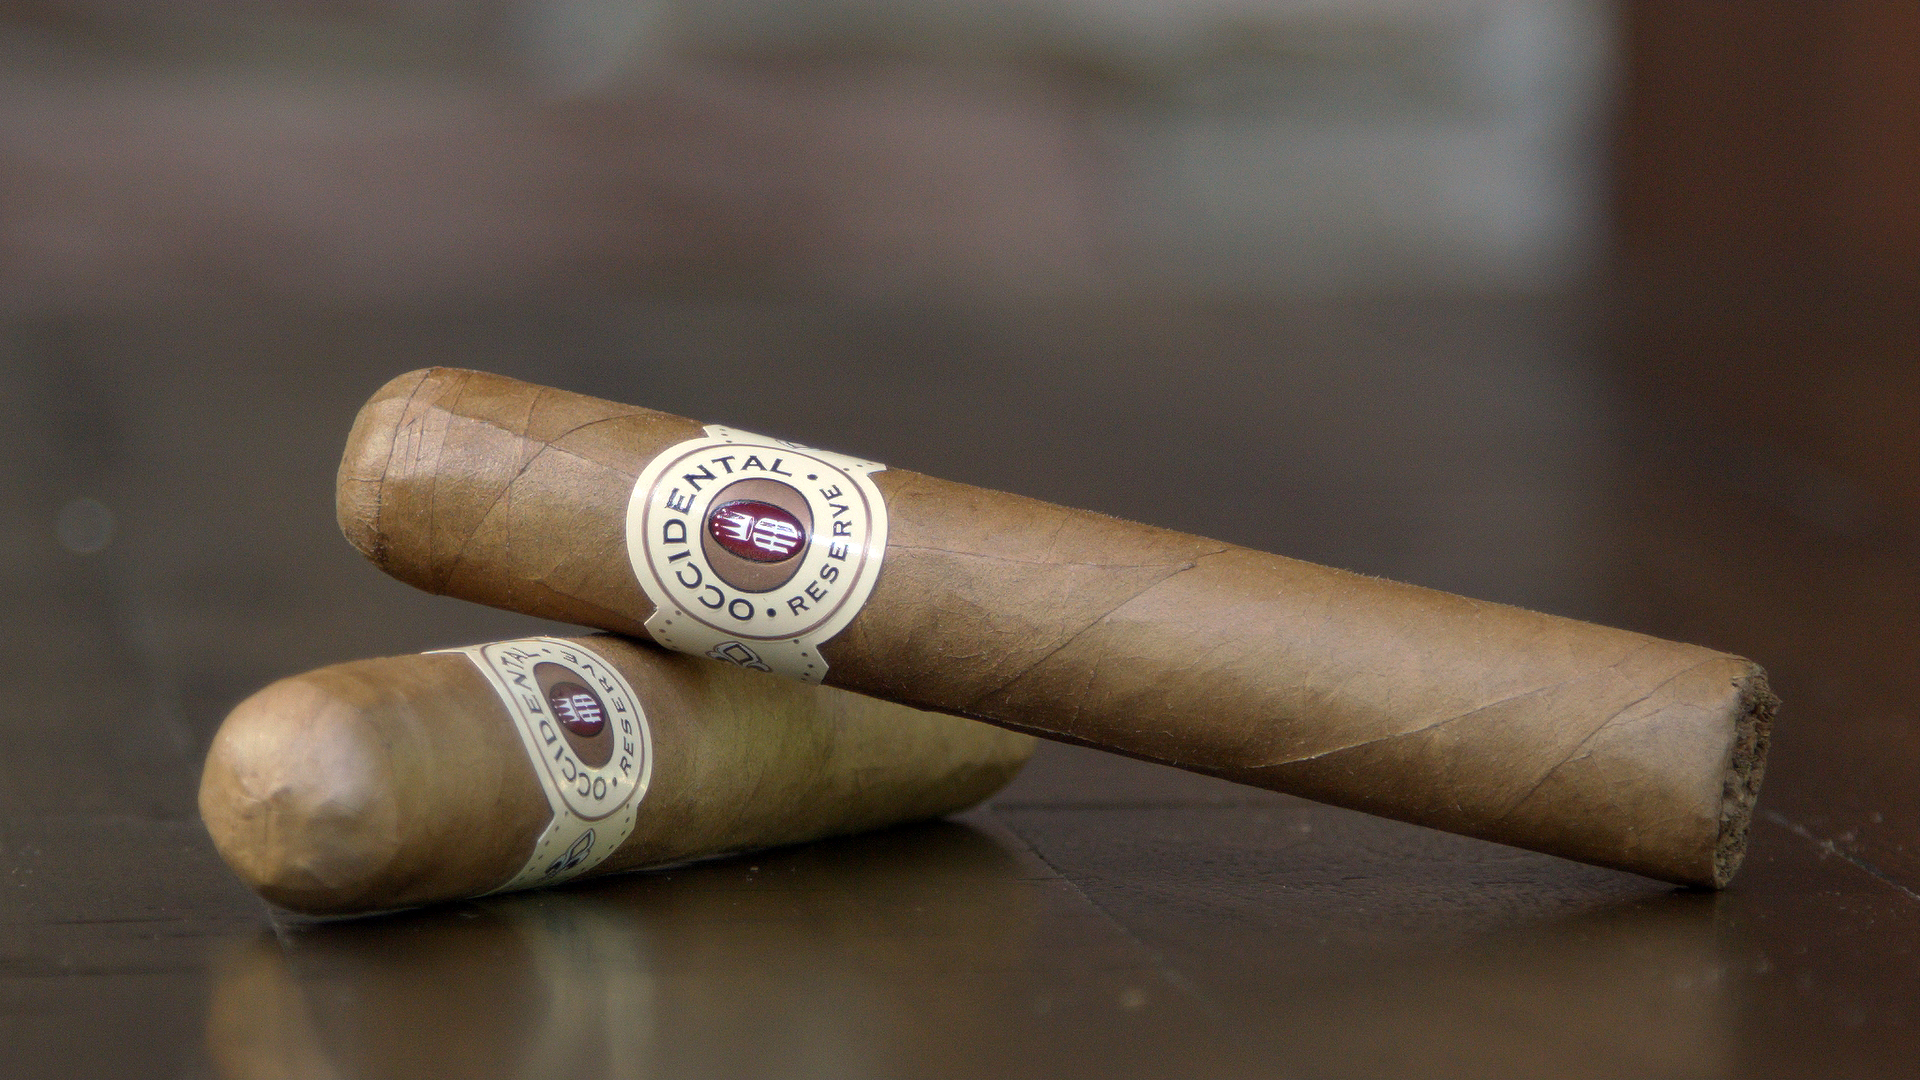 Two Alec Bradley Occidental Reserve Connecticut cigars sitting on a table outside of their cello